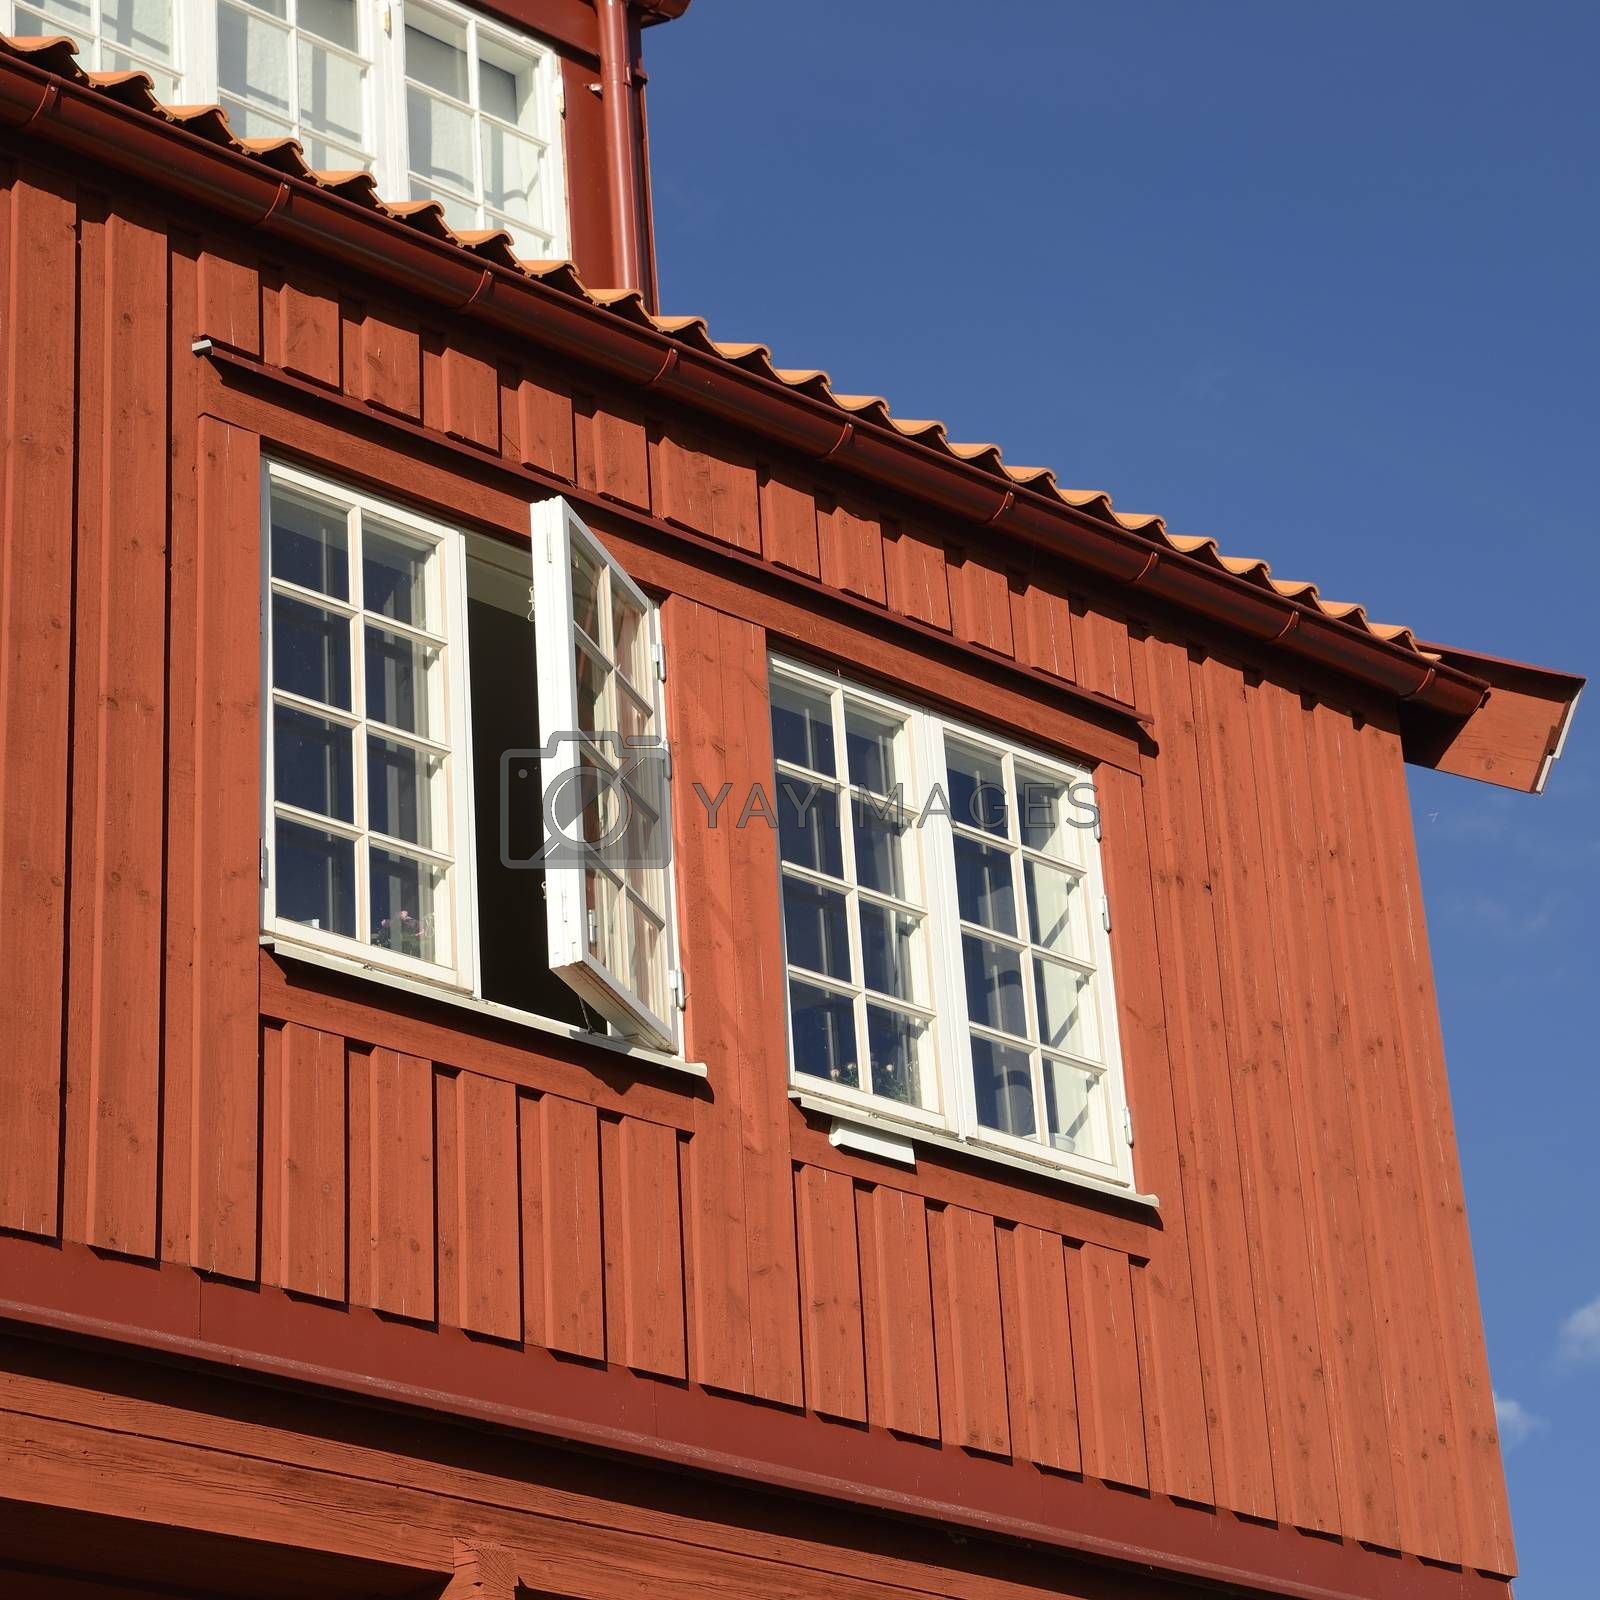 Traditional Swedish wooden facade.